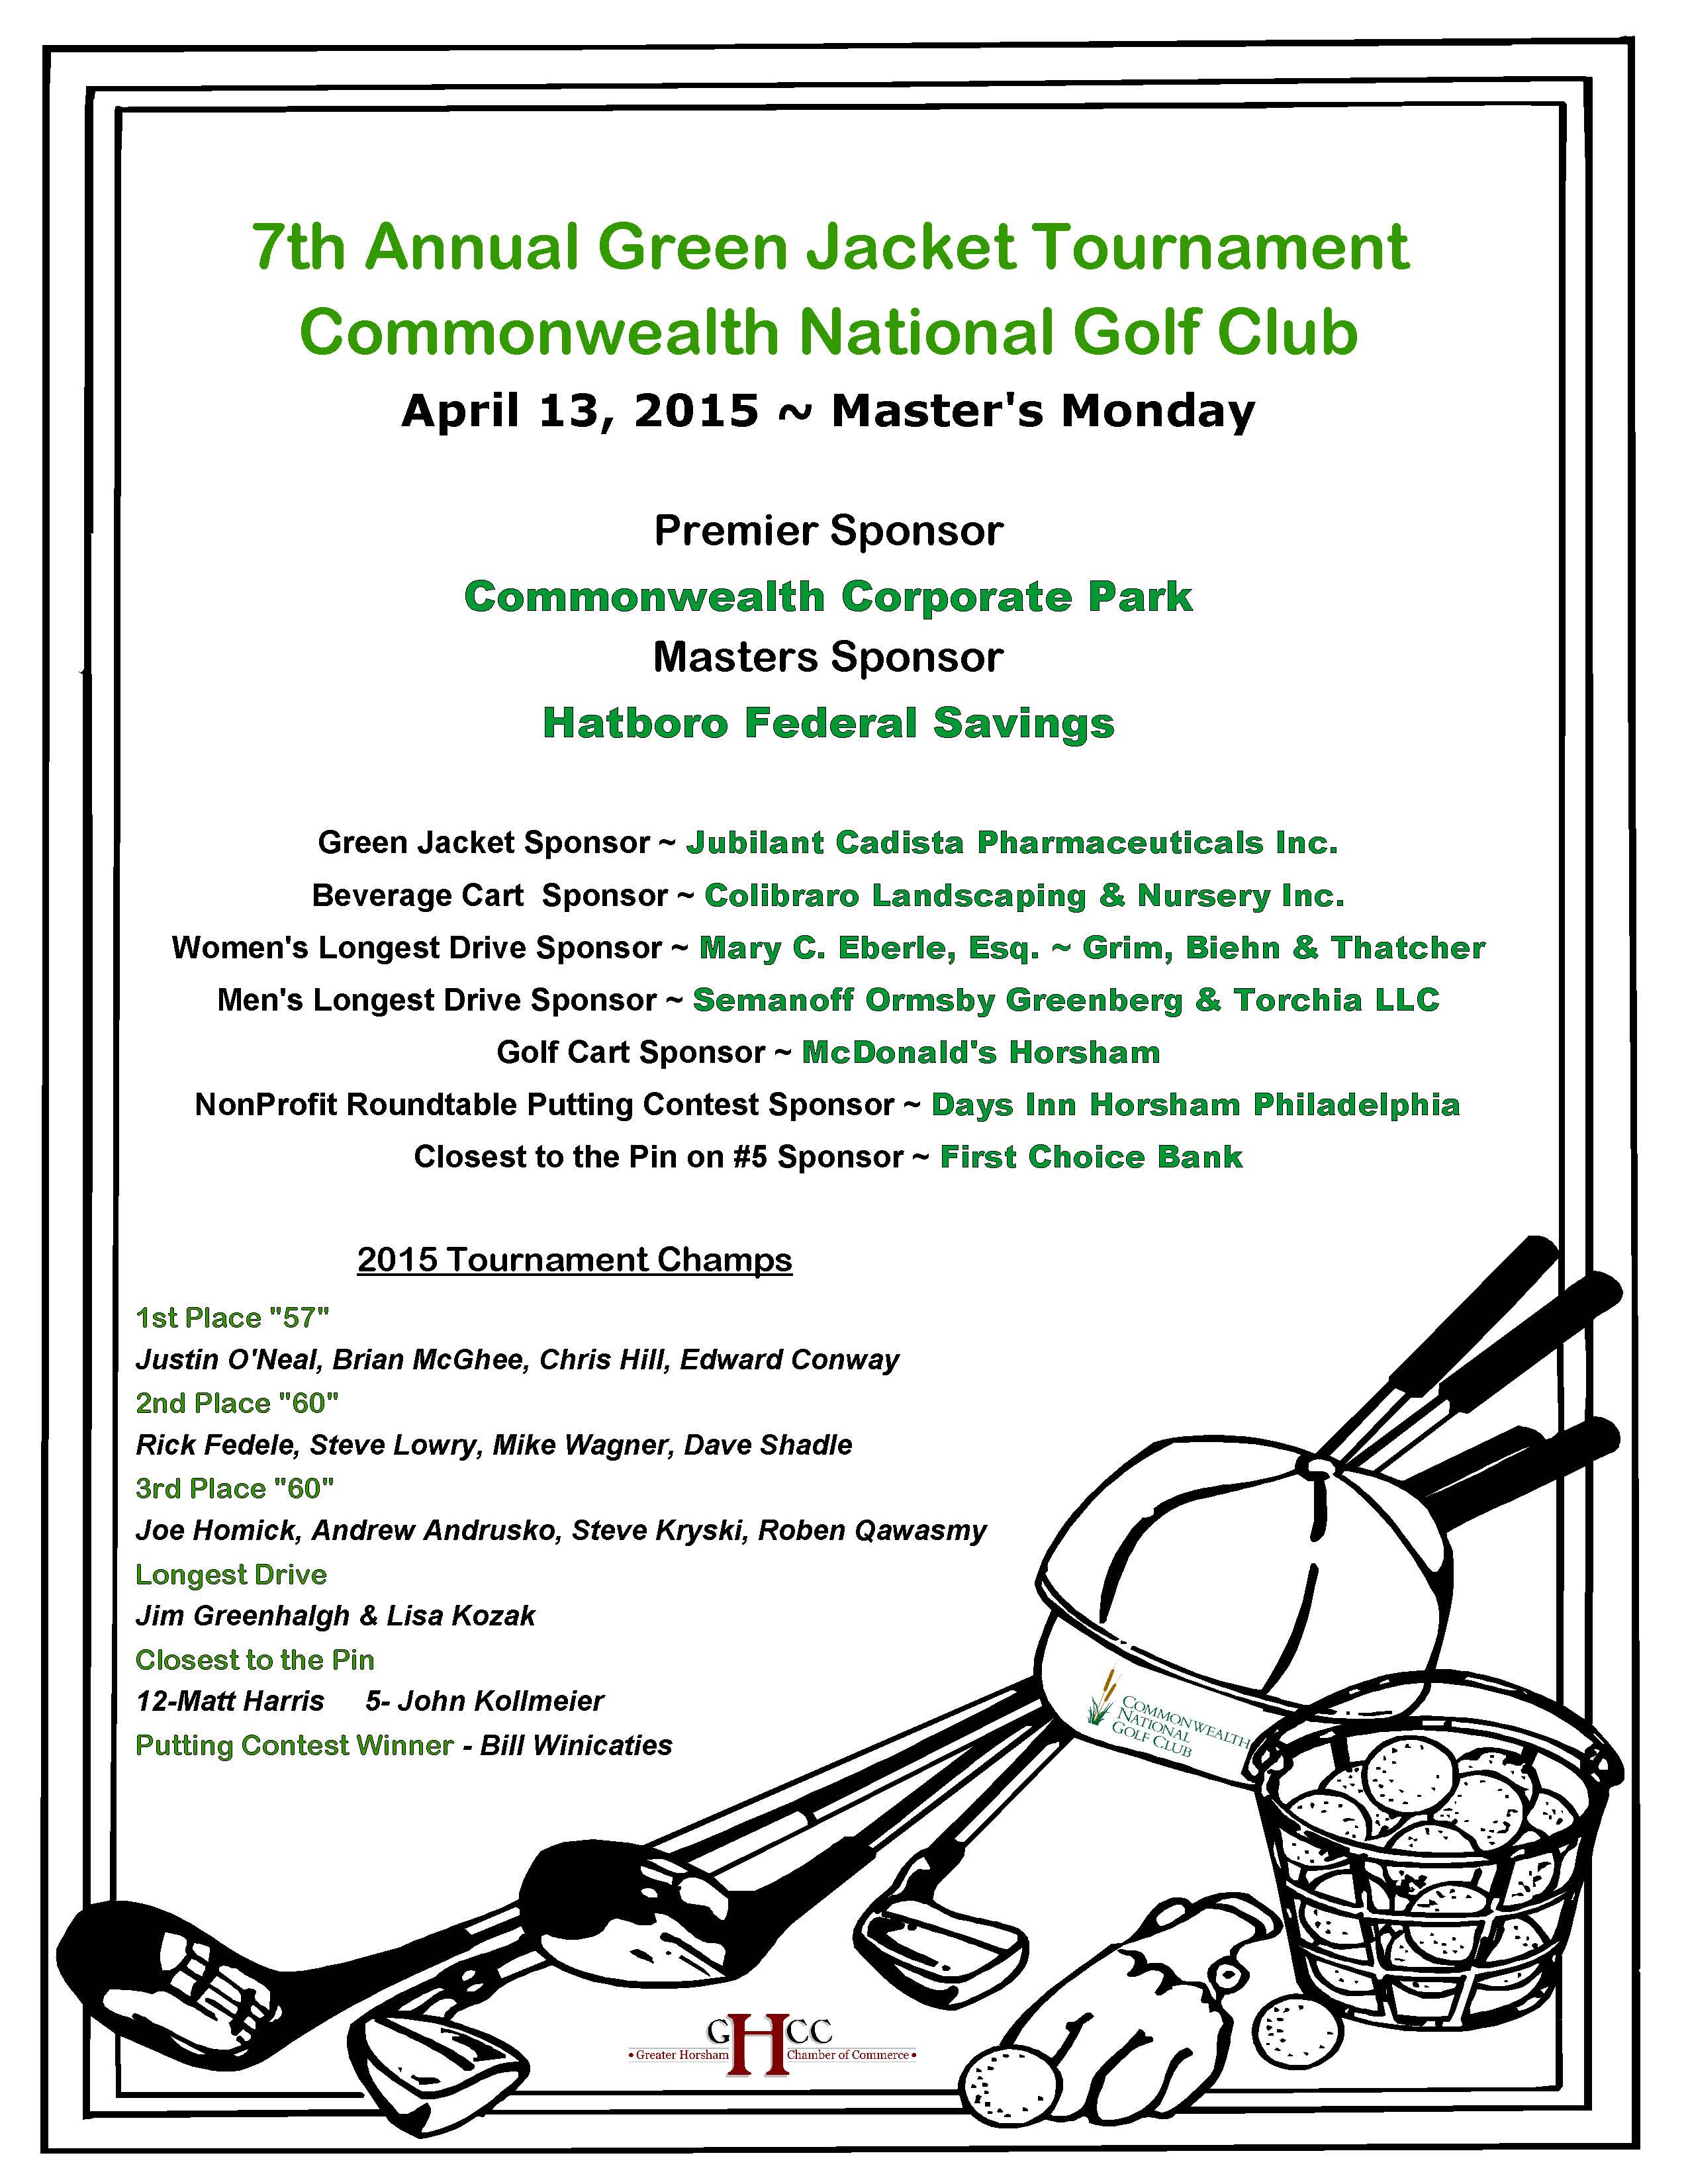 Golf Website Sponsors and Champs 2015